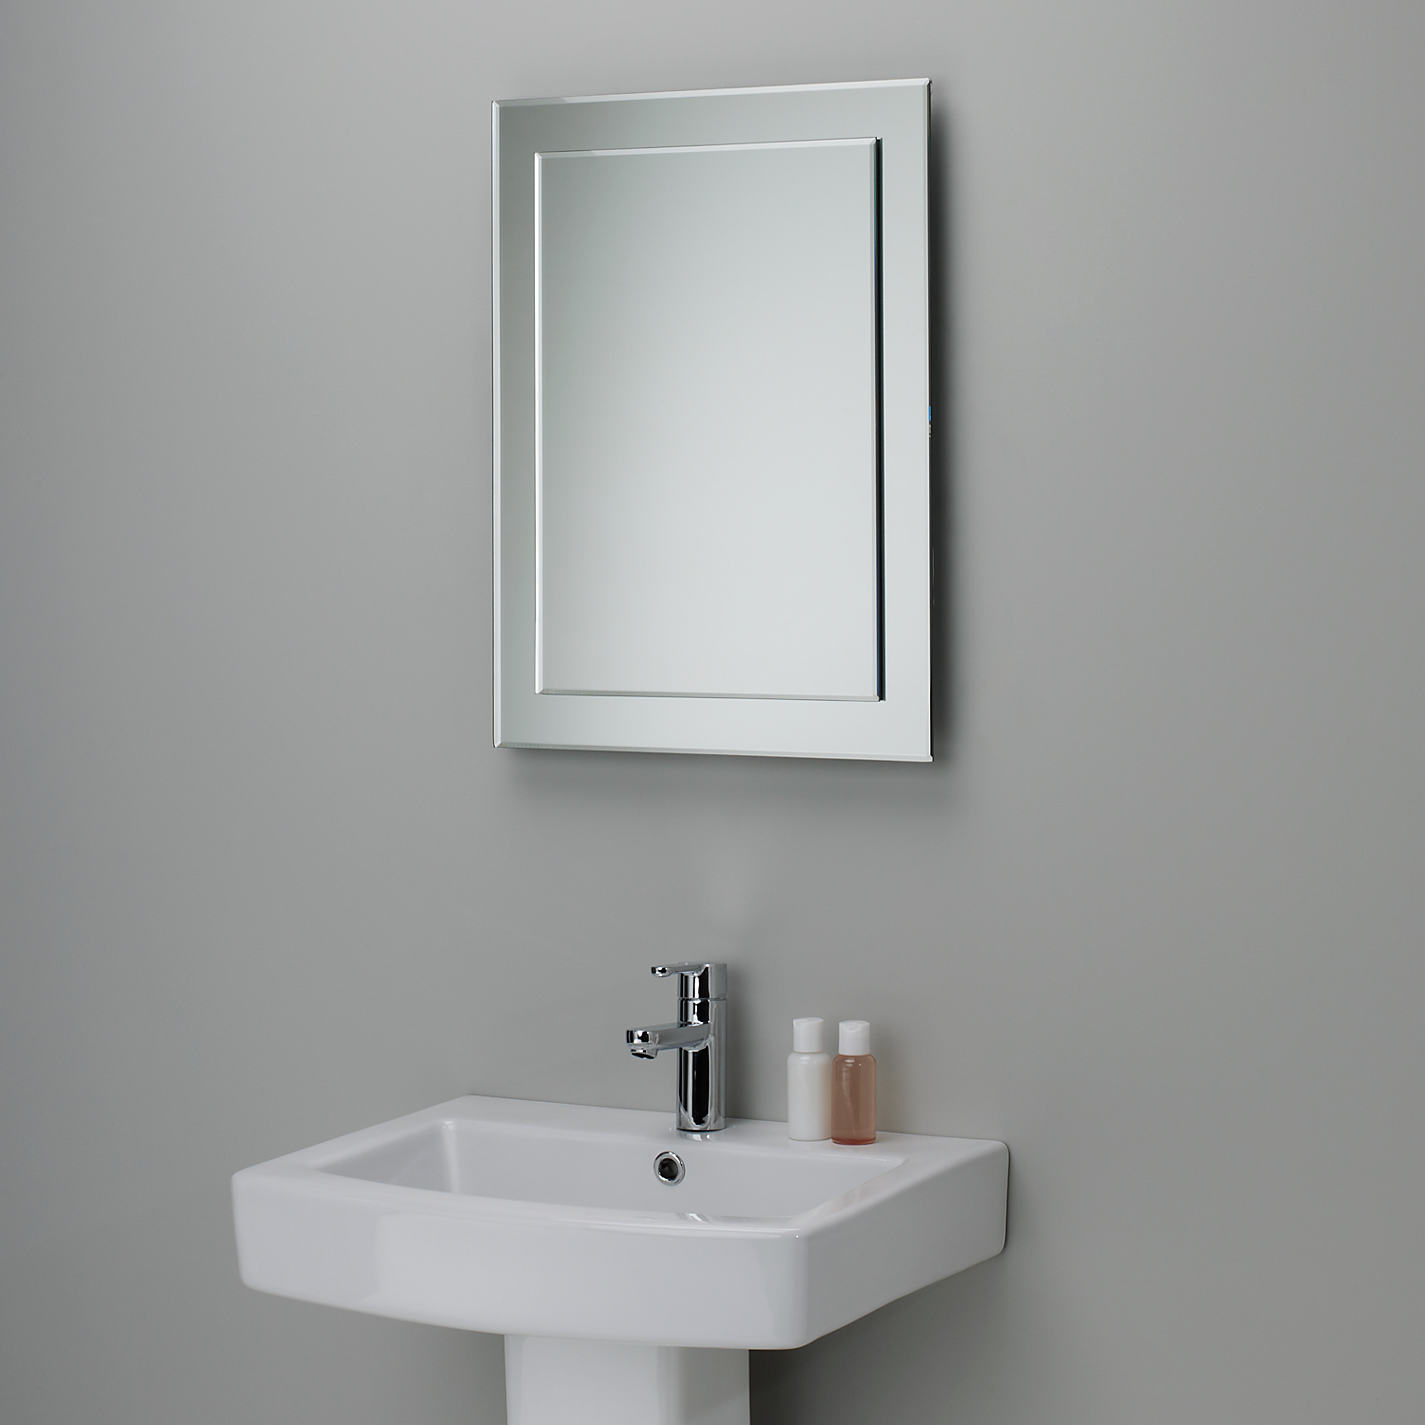 Duo Wall Bathroom Mirror Decoration Designs Guide